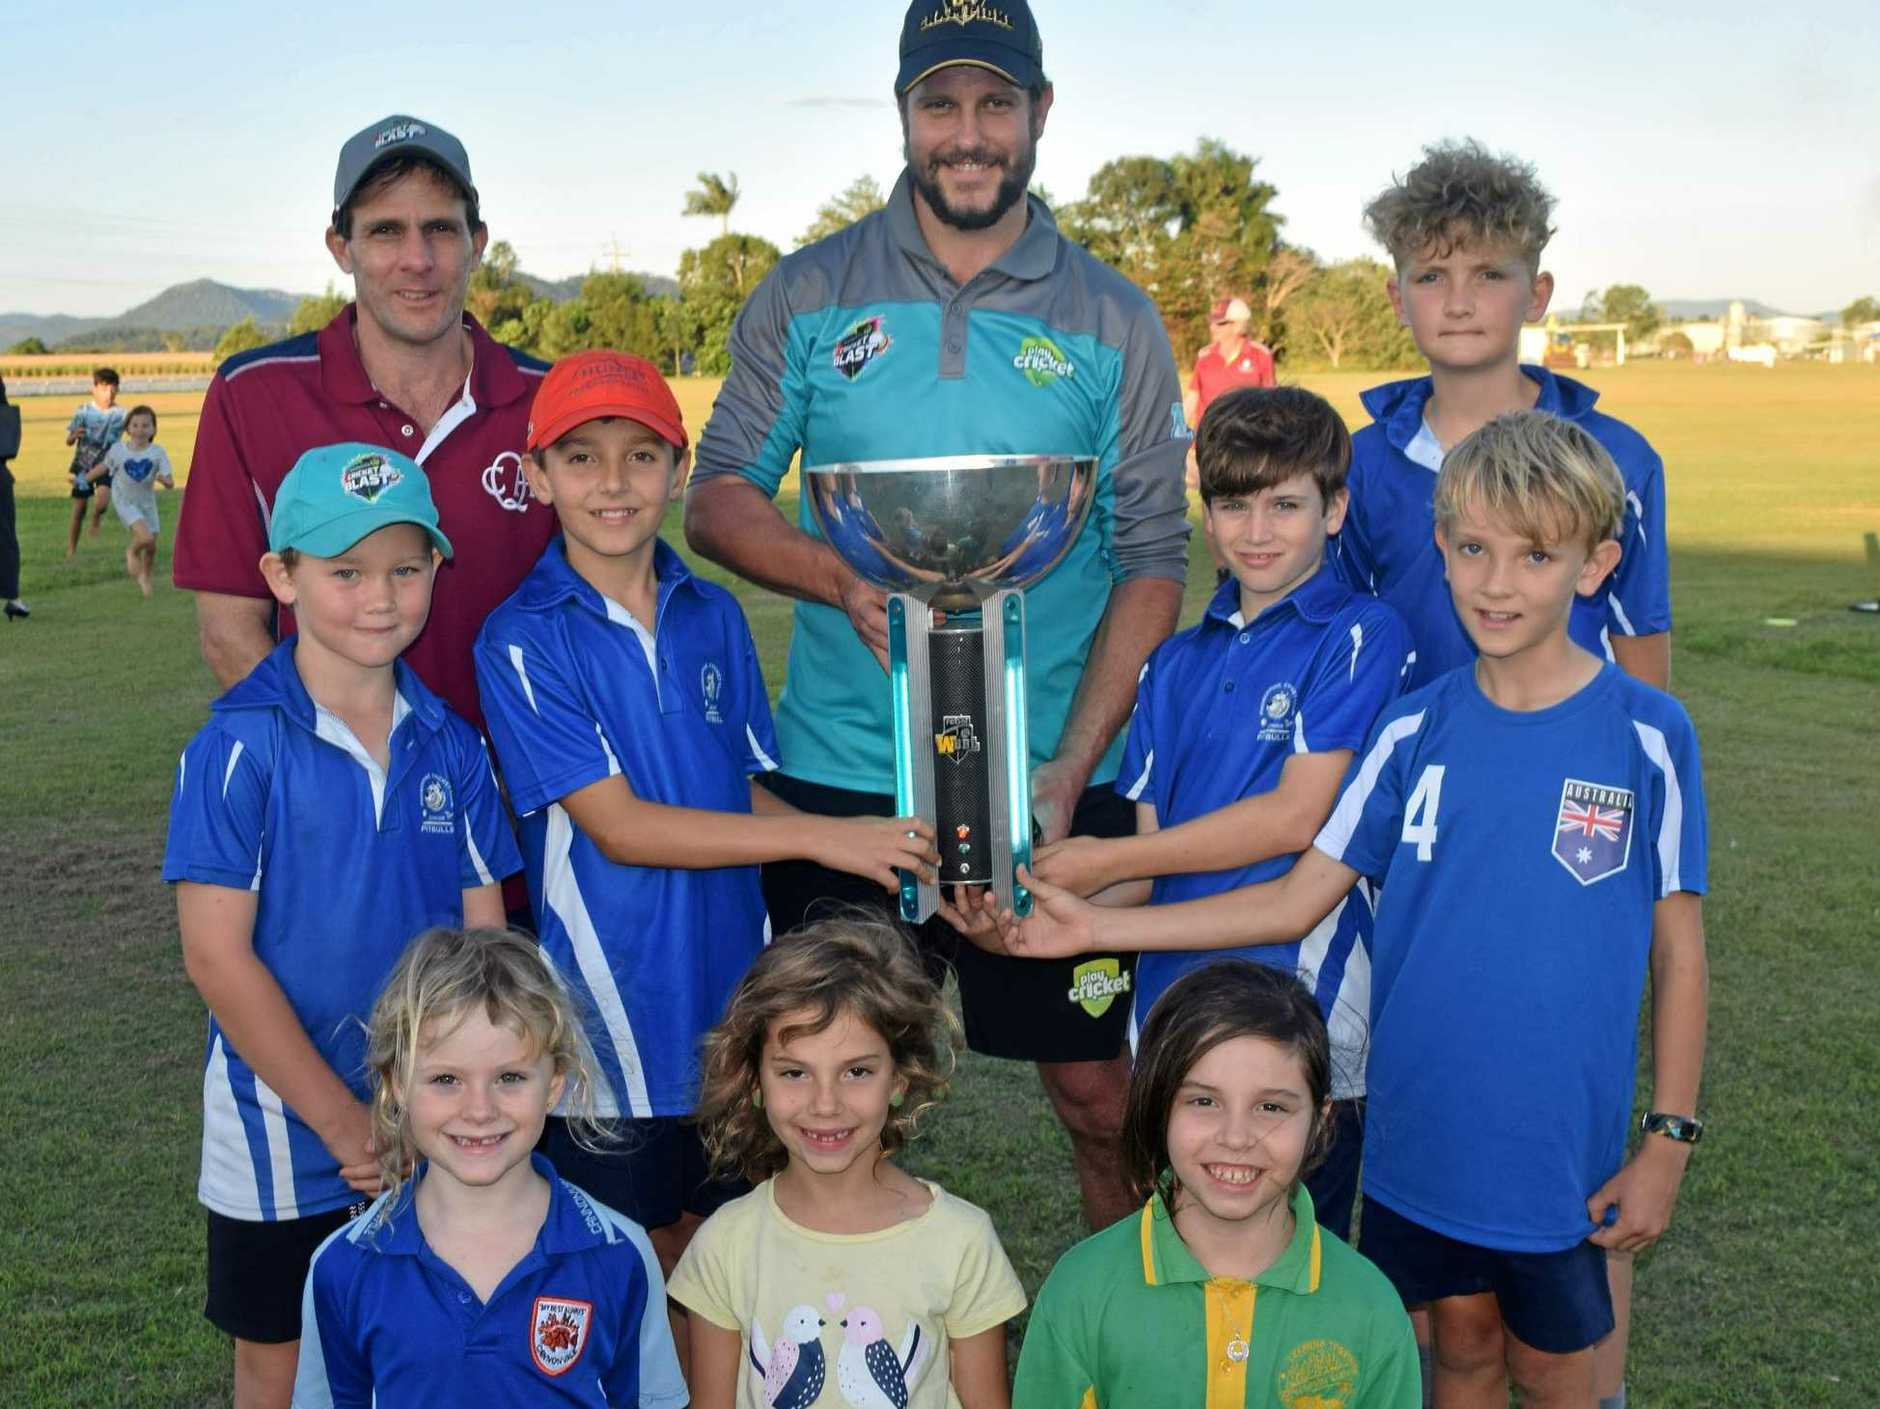 Retired Queensland and international test cricketer Brendan Nash, Queensland Cricket area manager Blake Rutherford with the WBBL trophy and Proserpine Junior Cricket players Archer Philipson, (middle) Emerson Baker, Oliver Wilson, Angus Hardy-Young, Nicholas Philipson, (front) Chiara Johnson, Zahra Kale and Hartley Kale.